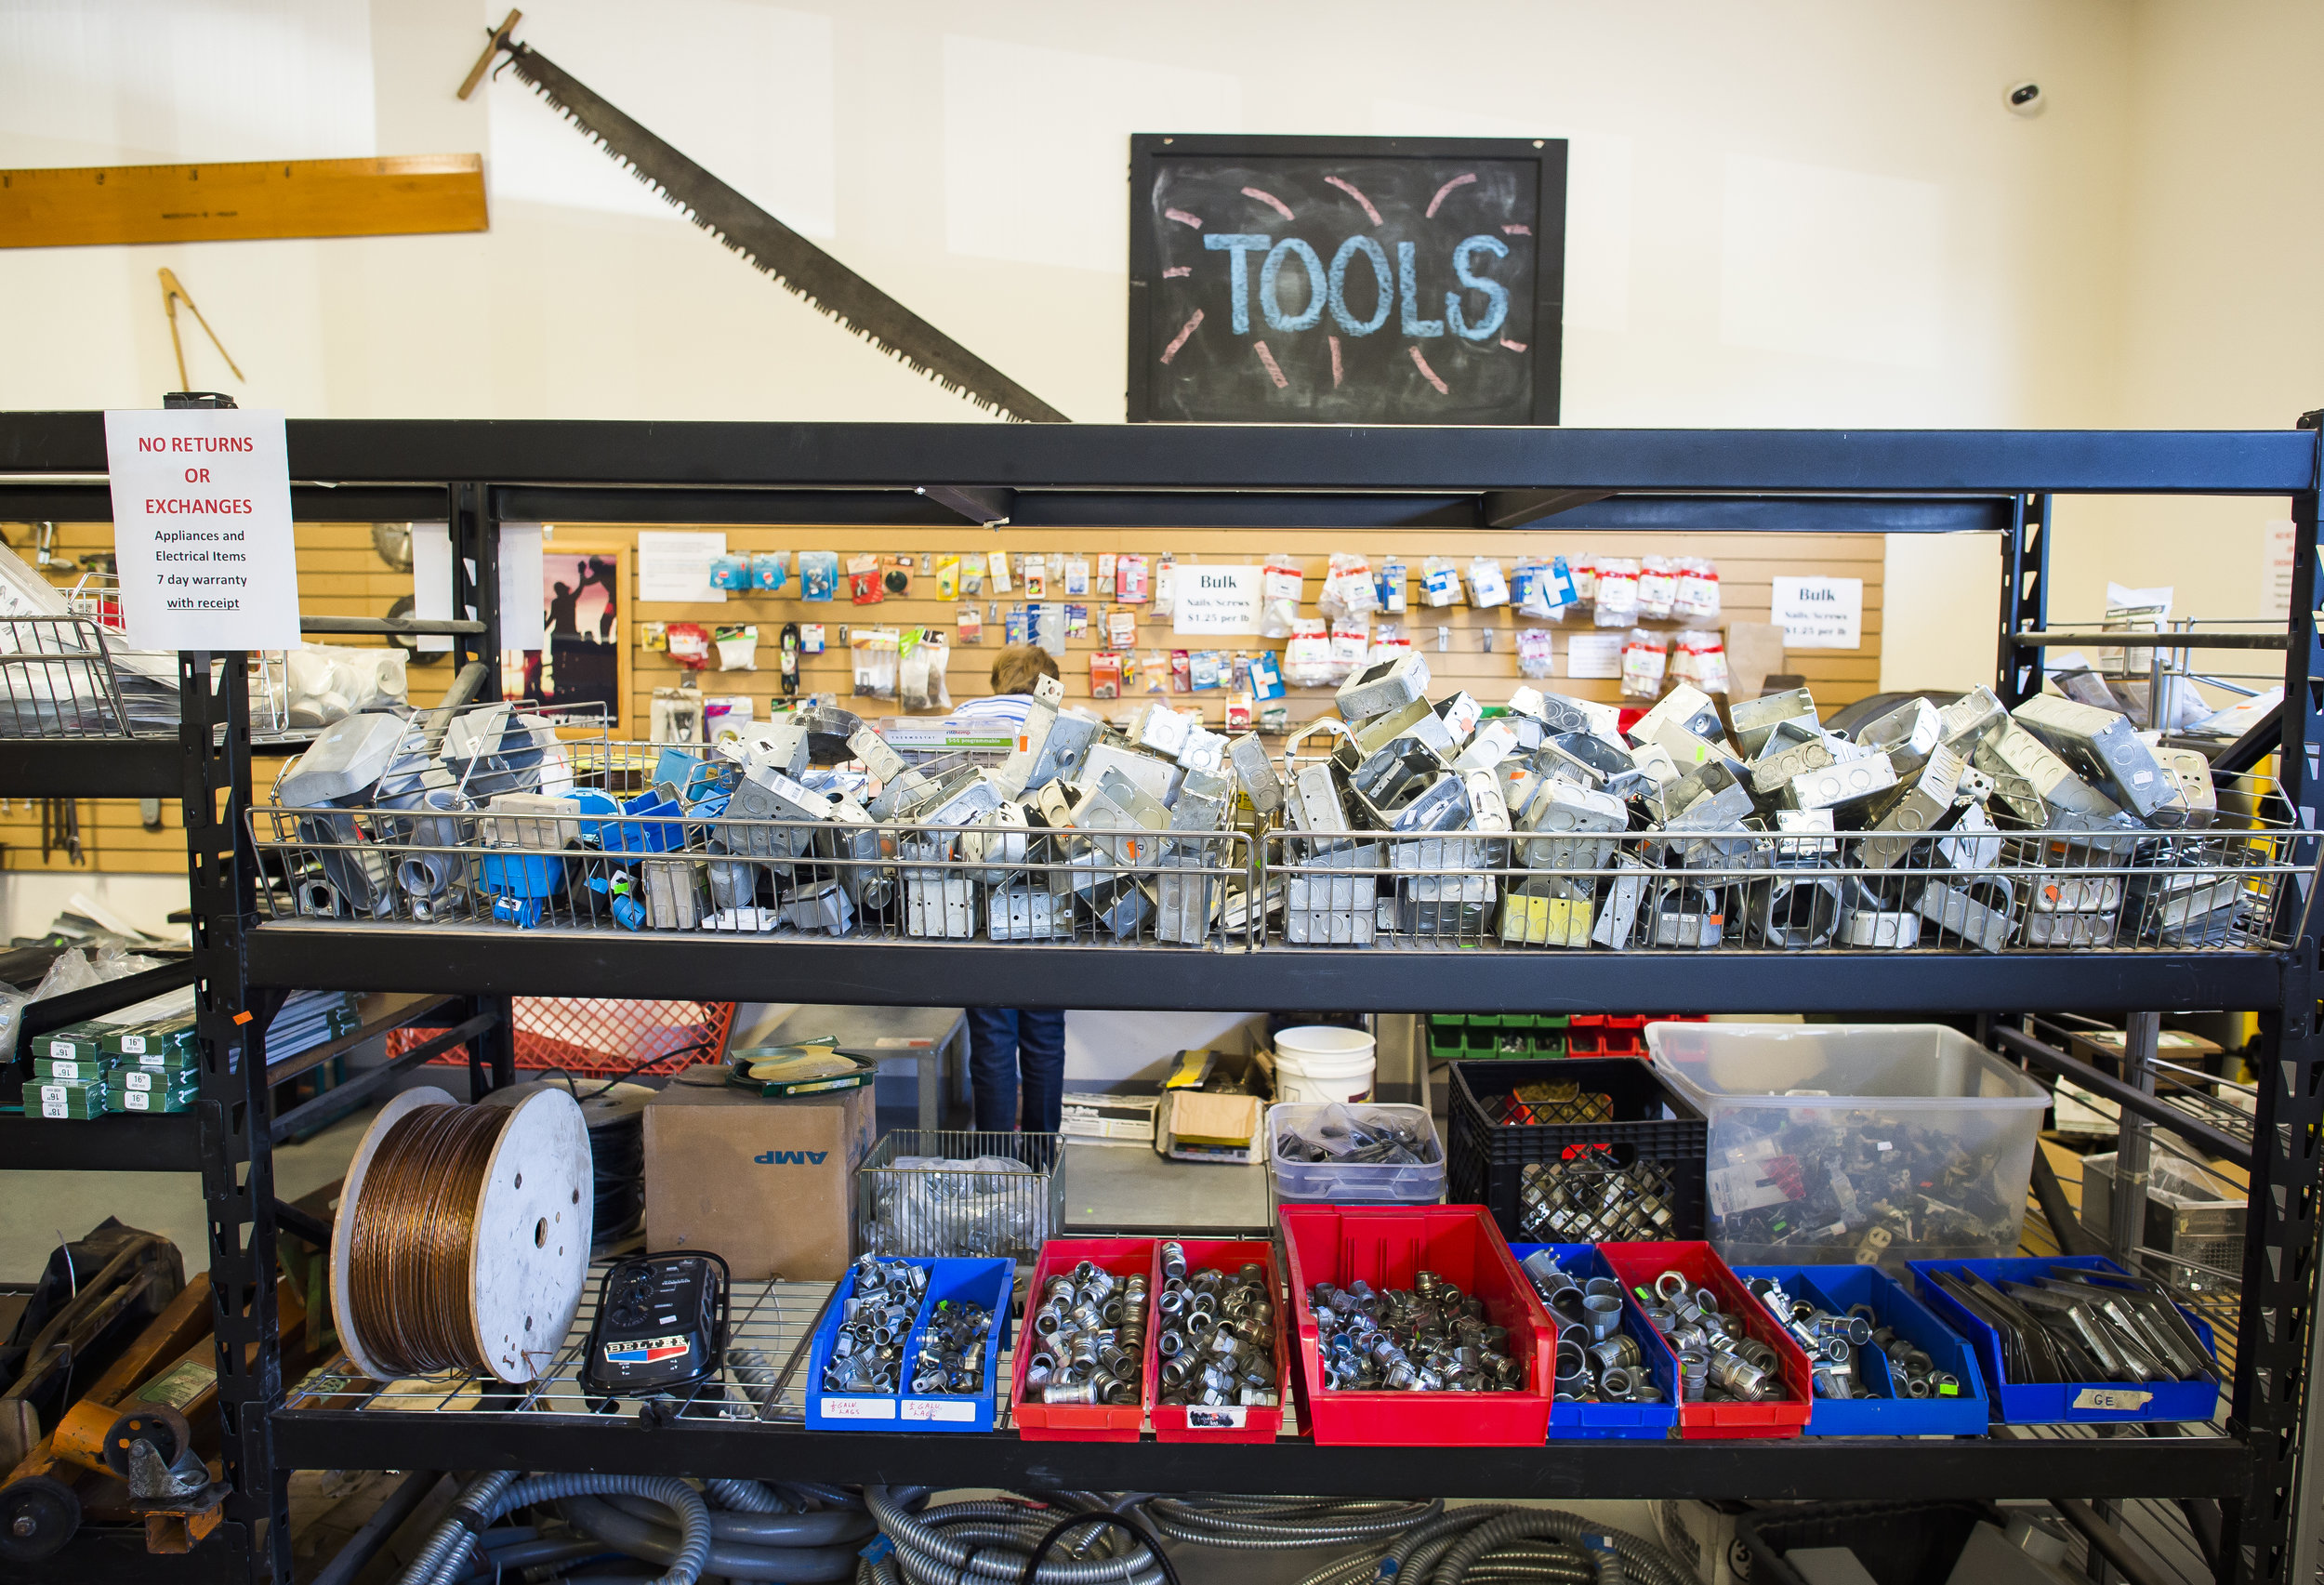 TOOLS   From hand tools to power tools, we carry a variety of tools that will help you get the job done. All power tools that we accept are in working condition.